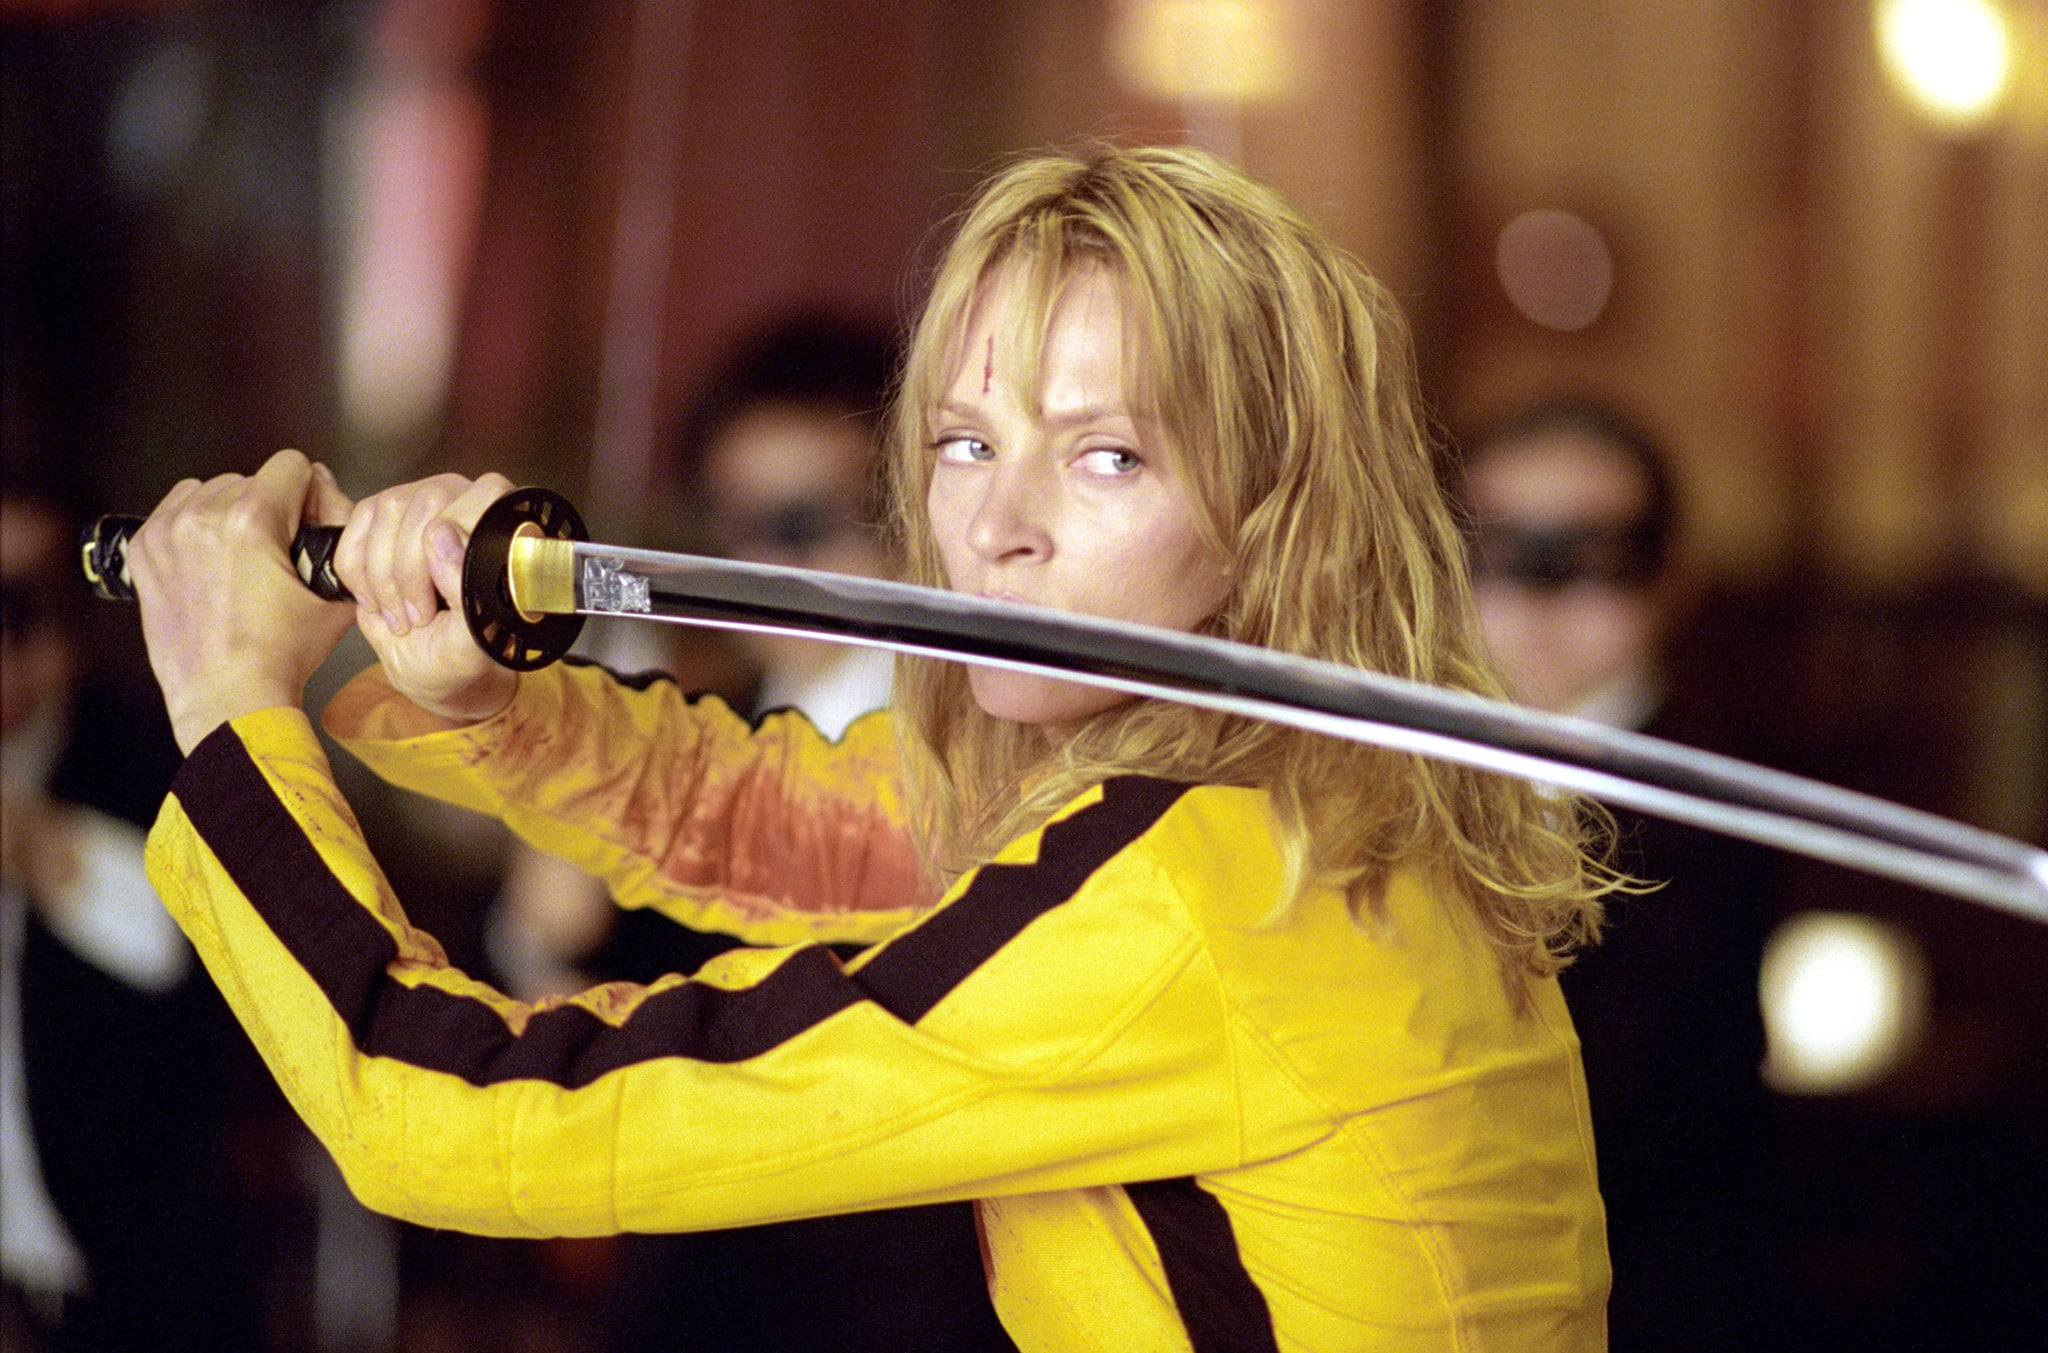 KILL BILL, Uma Thurman, 2003. (c) Miramax/Courtesy: Everett Collection.